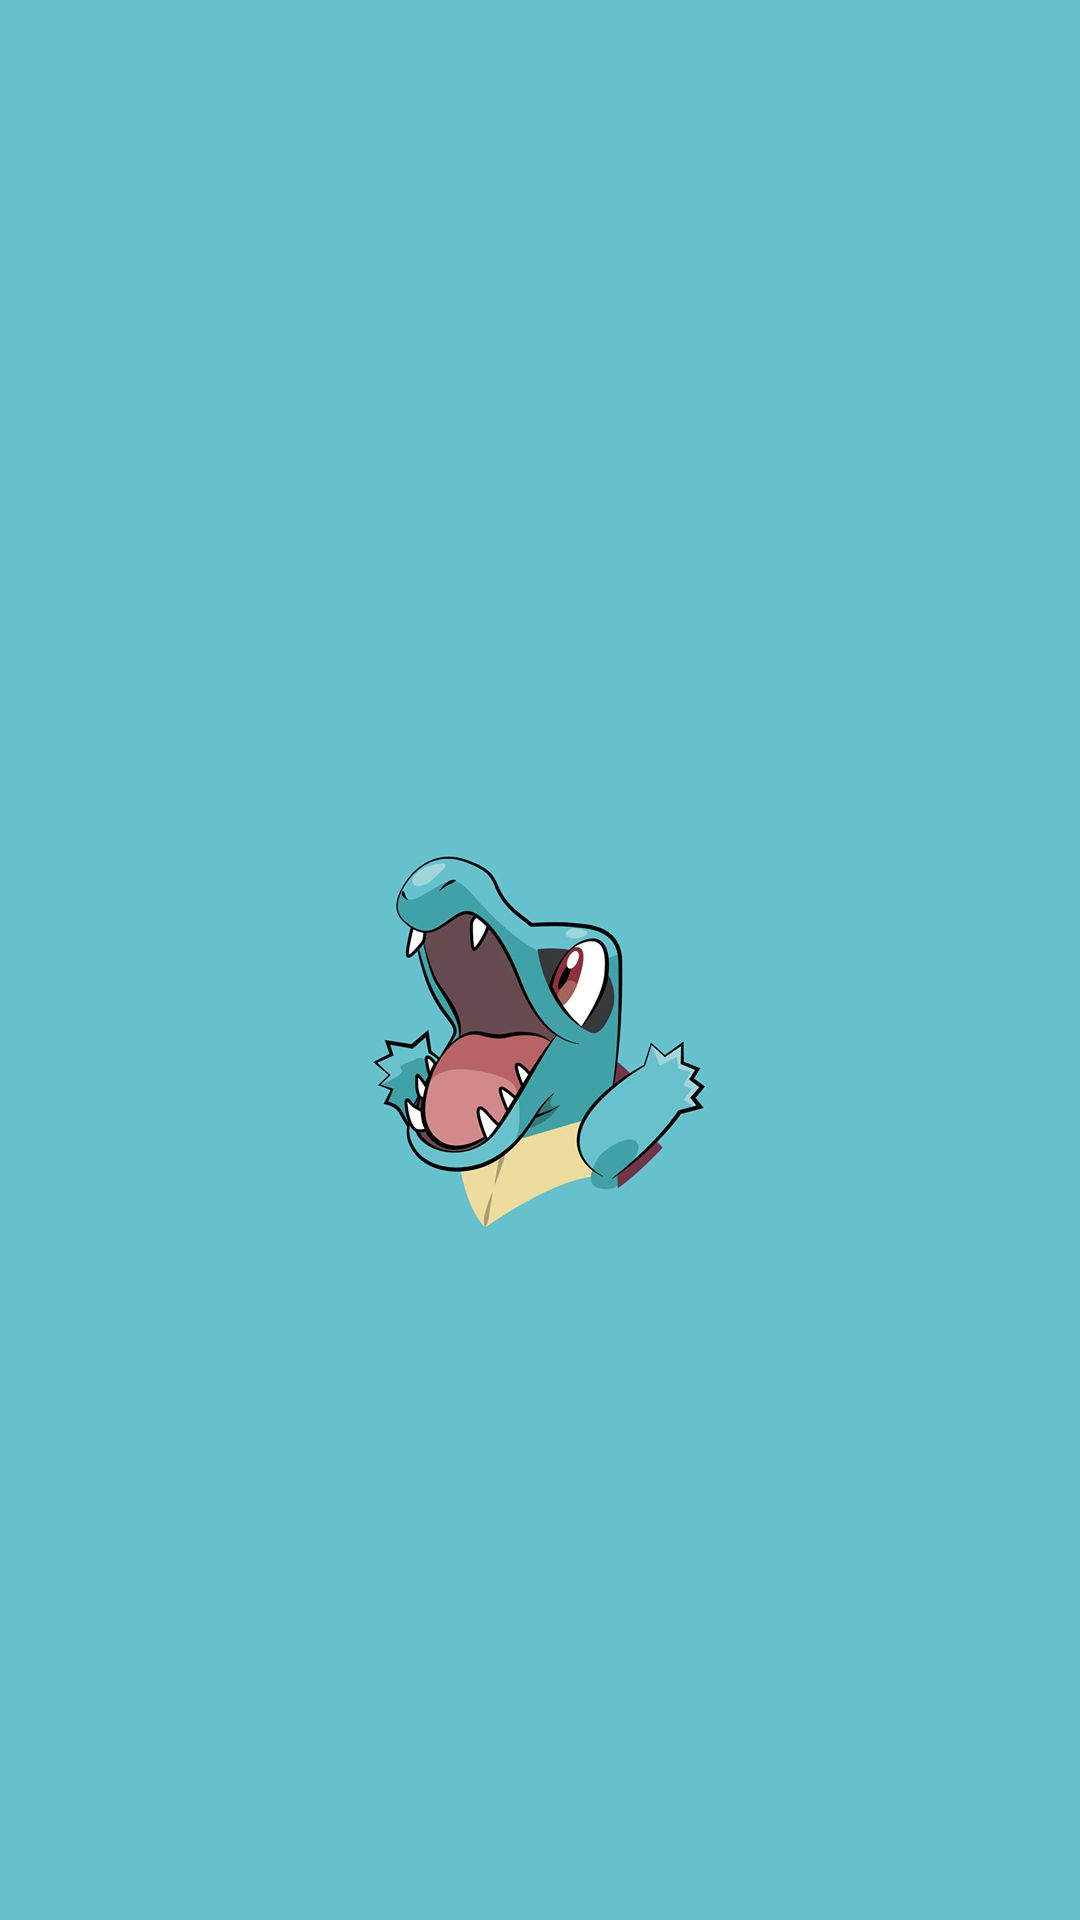 Totodile Pokemon Iphone 6 Hd Wallpaper Iphone Wallpaper Tumblr